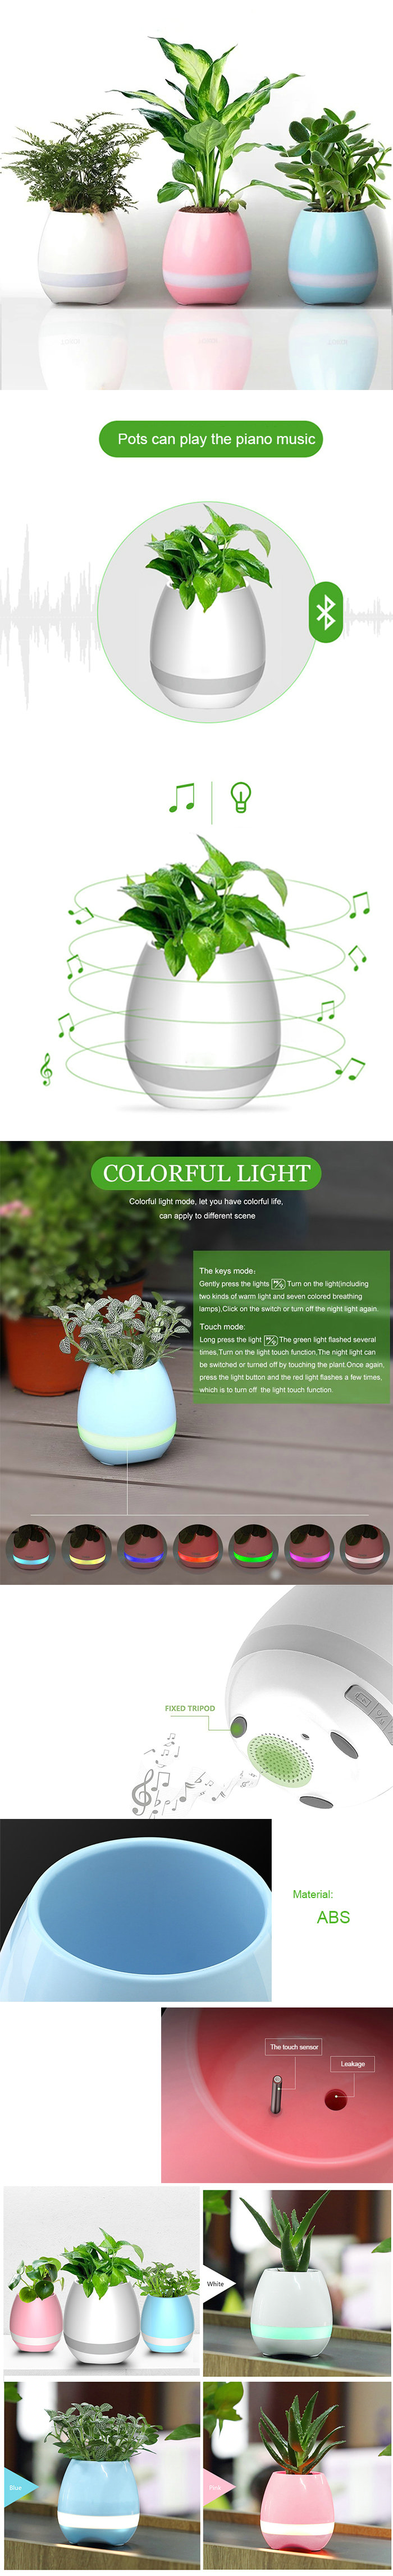 Mini Smart Music Flower Pot Touch Sensation Can Play Music Bluetooth Function Potted Plant White Blue Powder 3 Colors Available